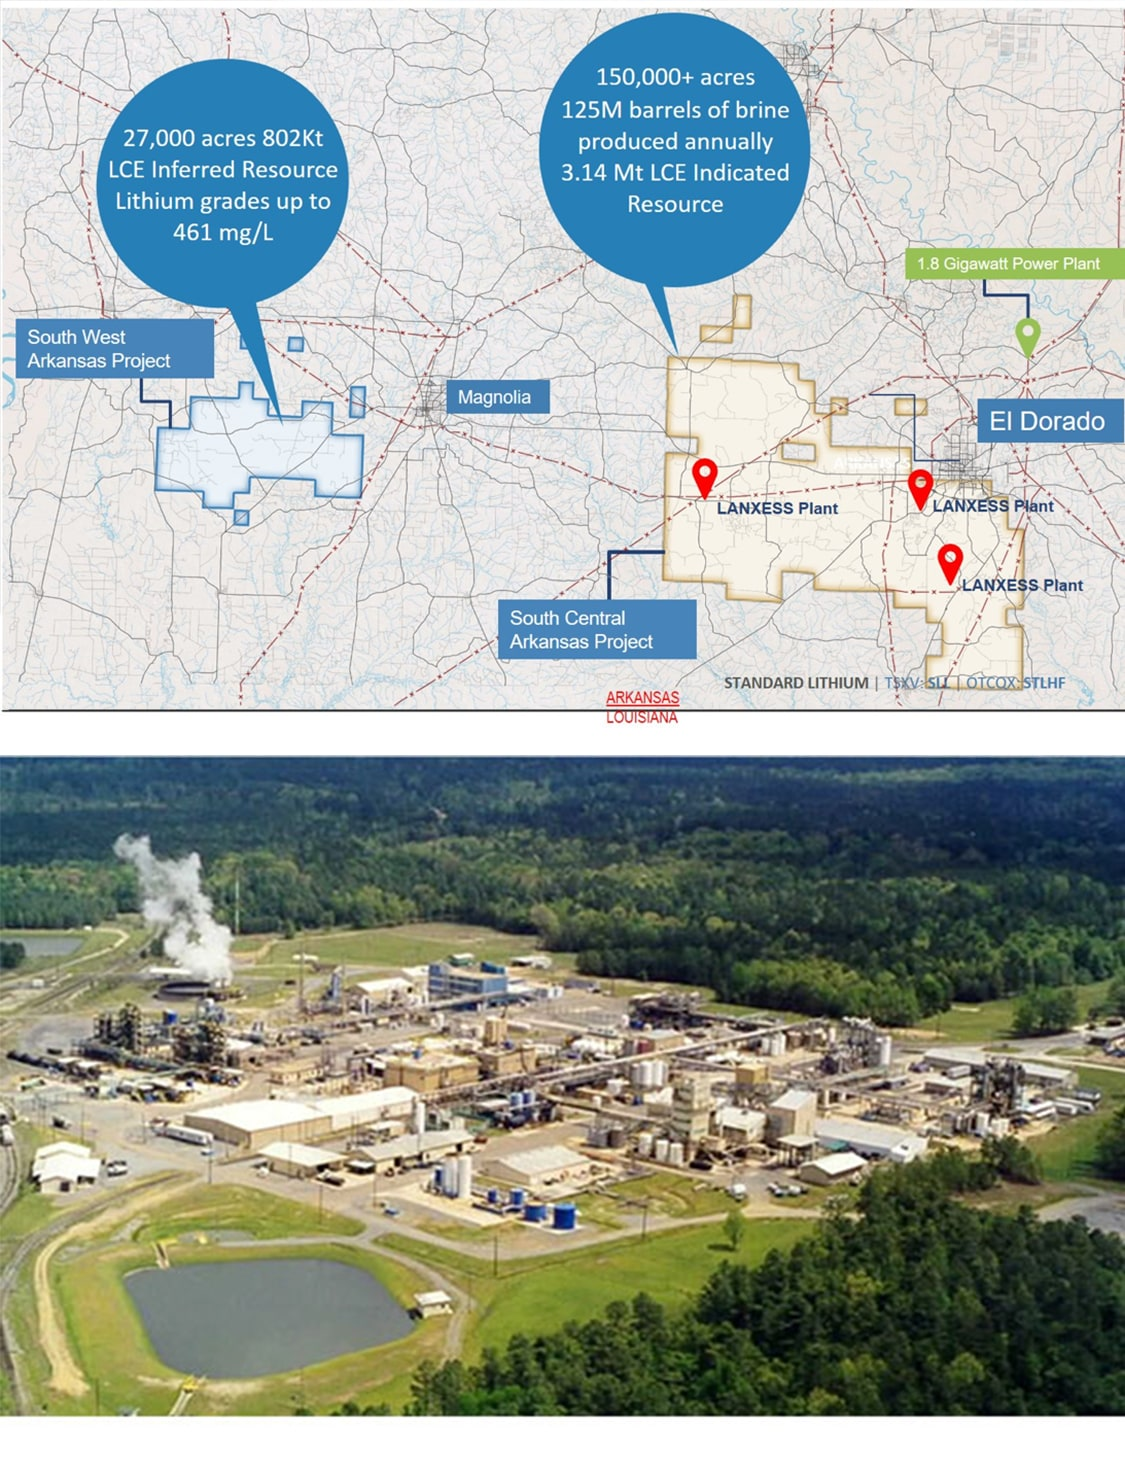 Top: Map of Lanxess Project South Central Arkansas, Bottom: Lanxess Southern Brine Plant